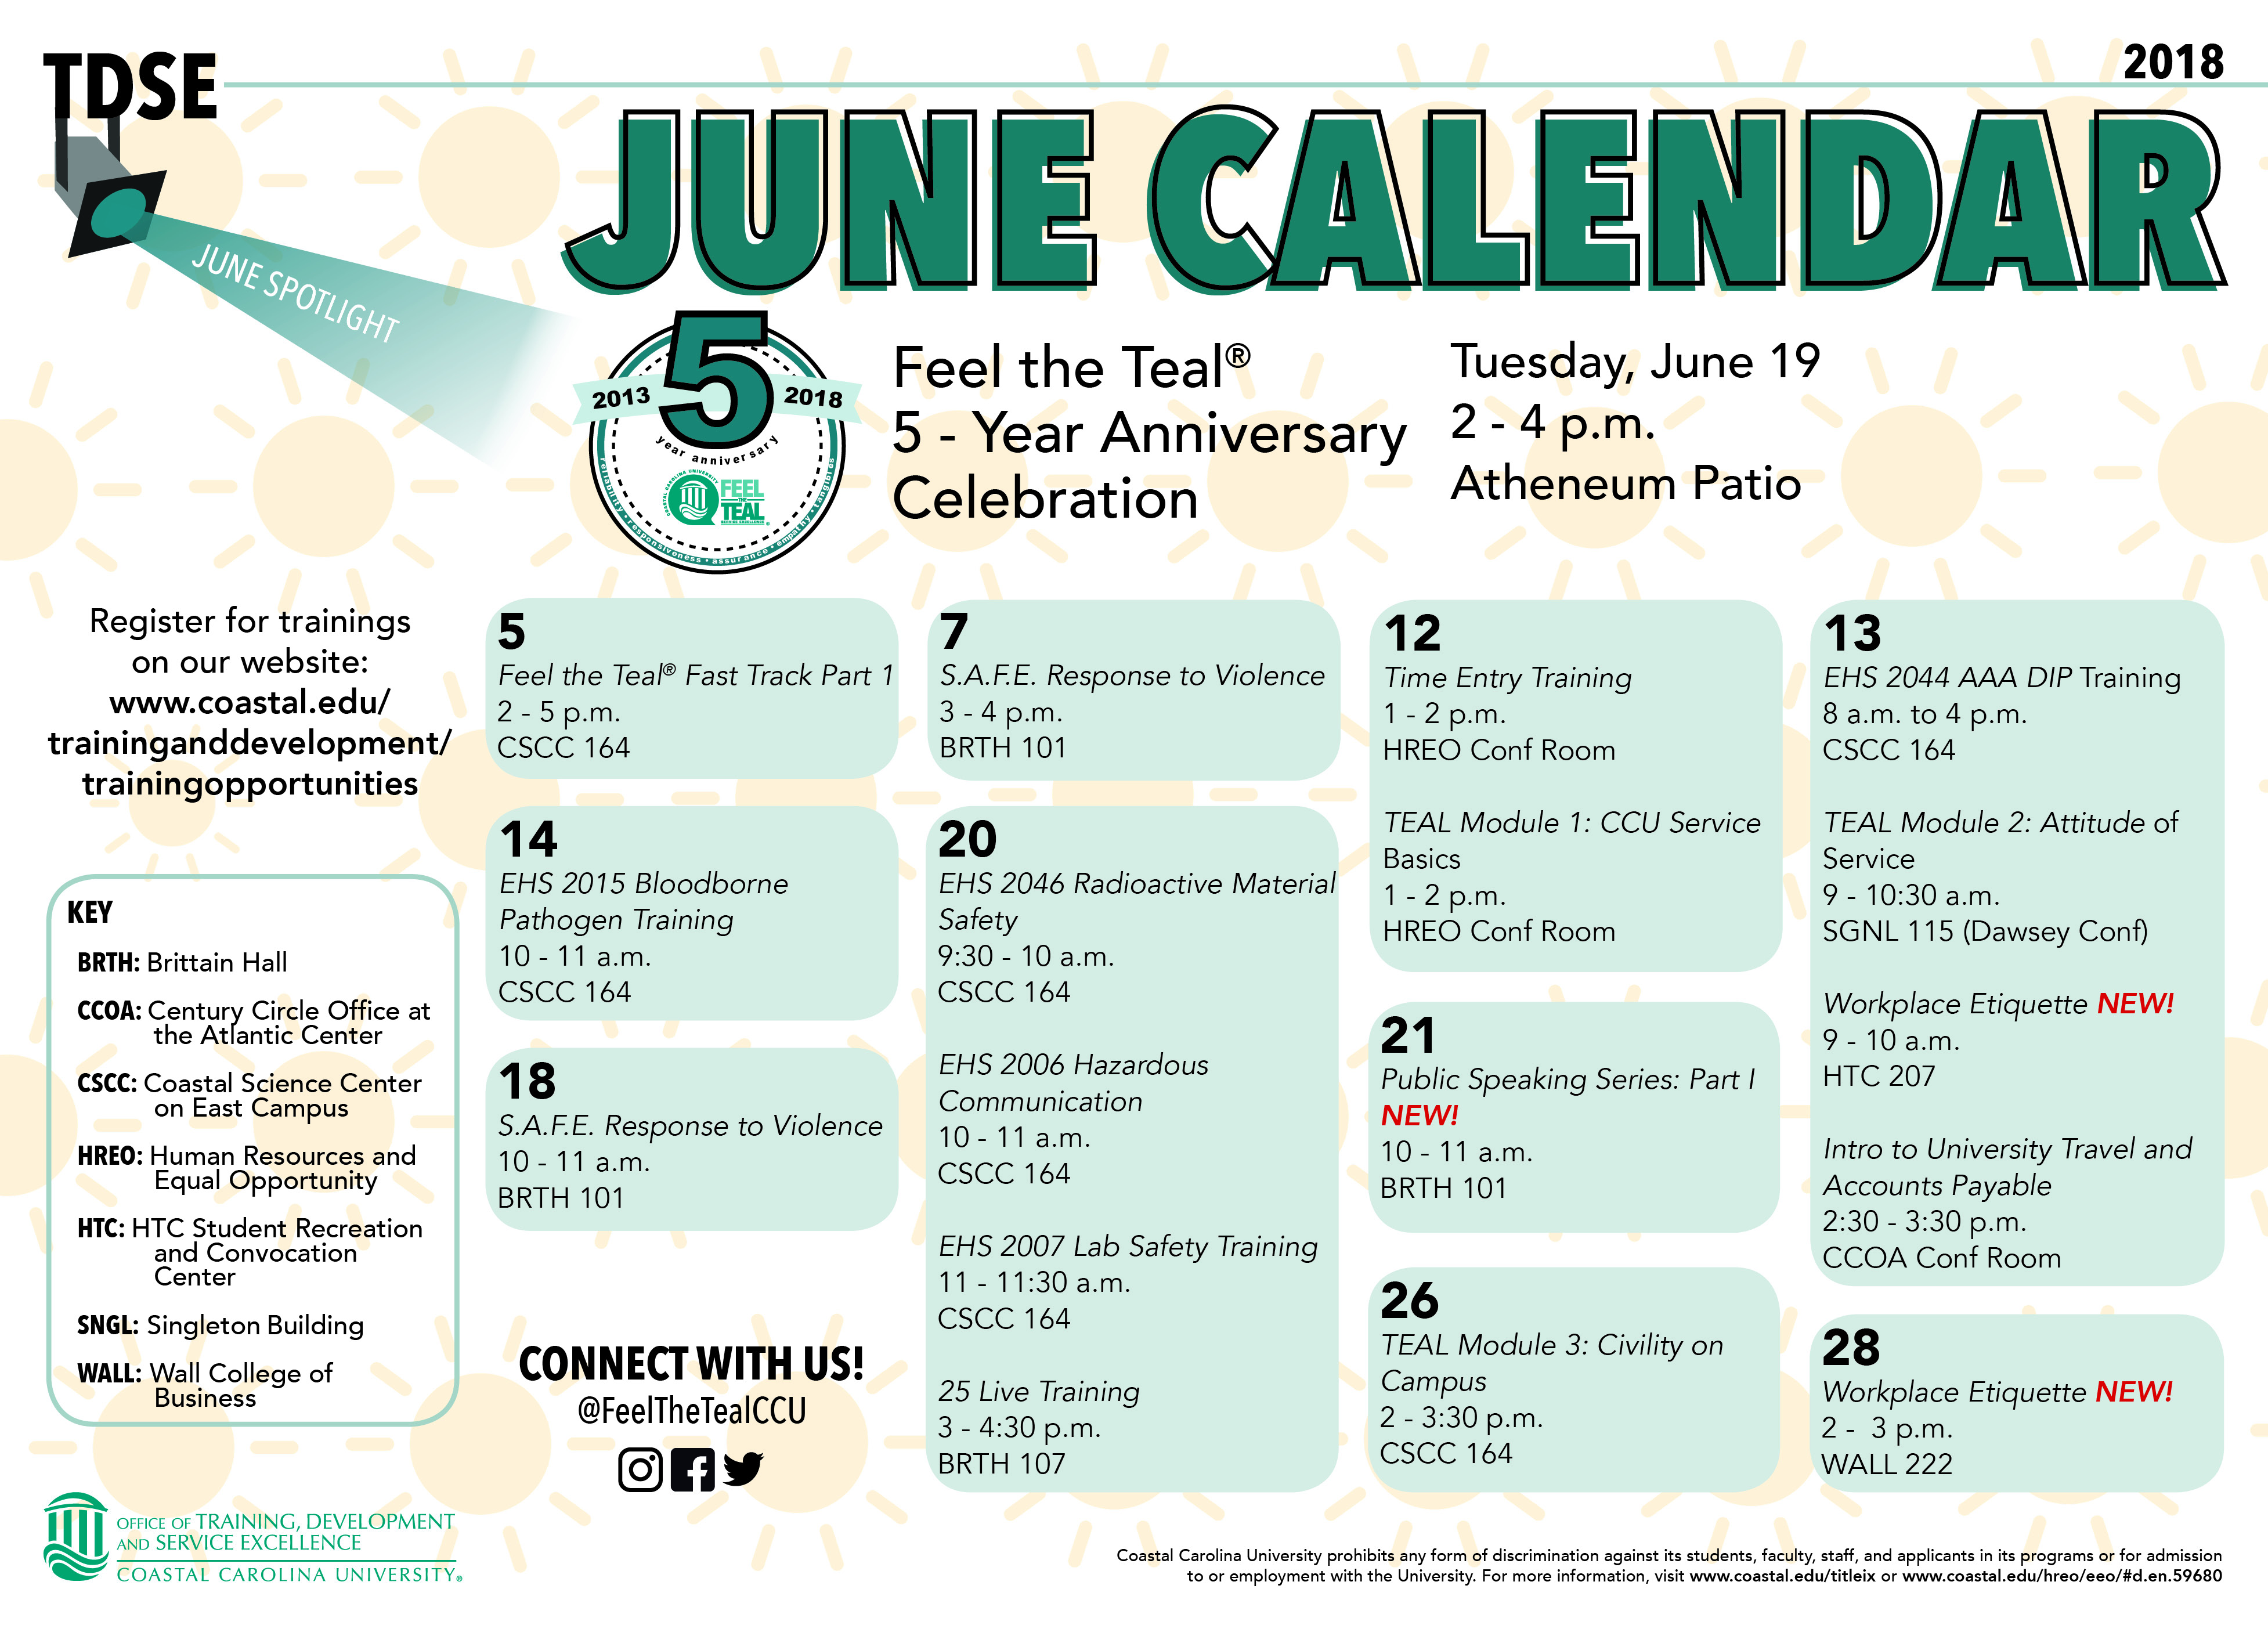 Picture of June 2018 calendar offerings